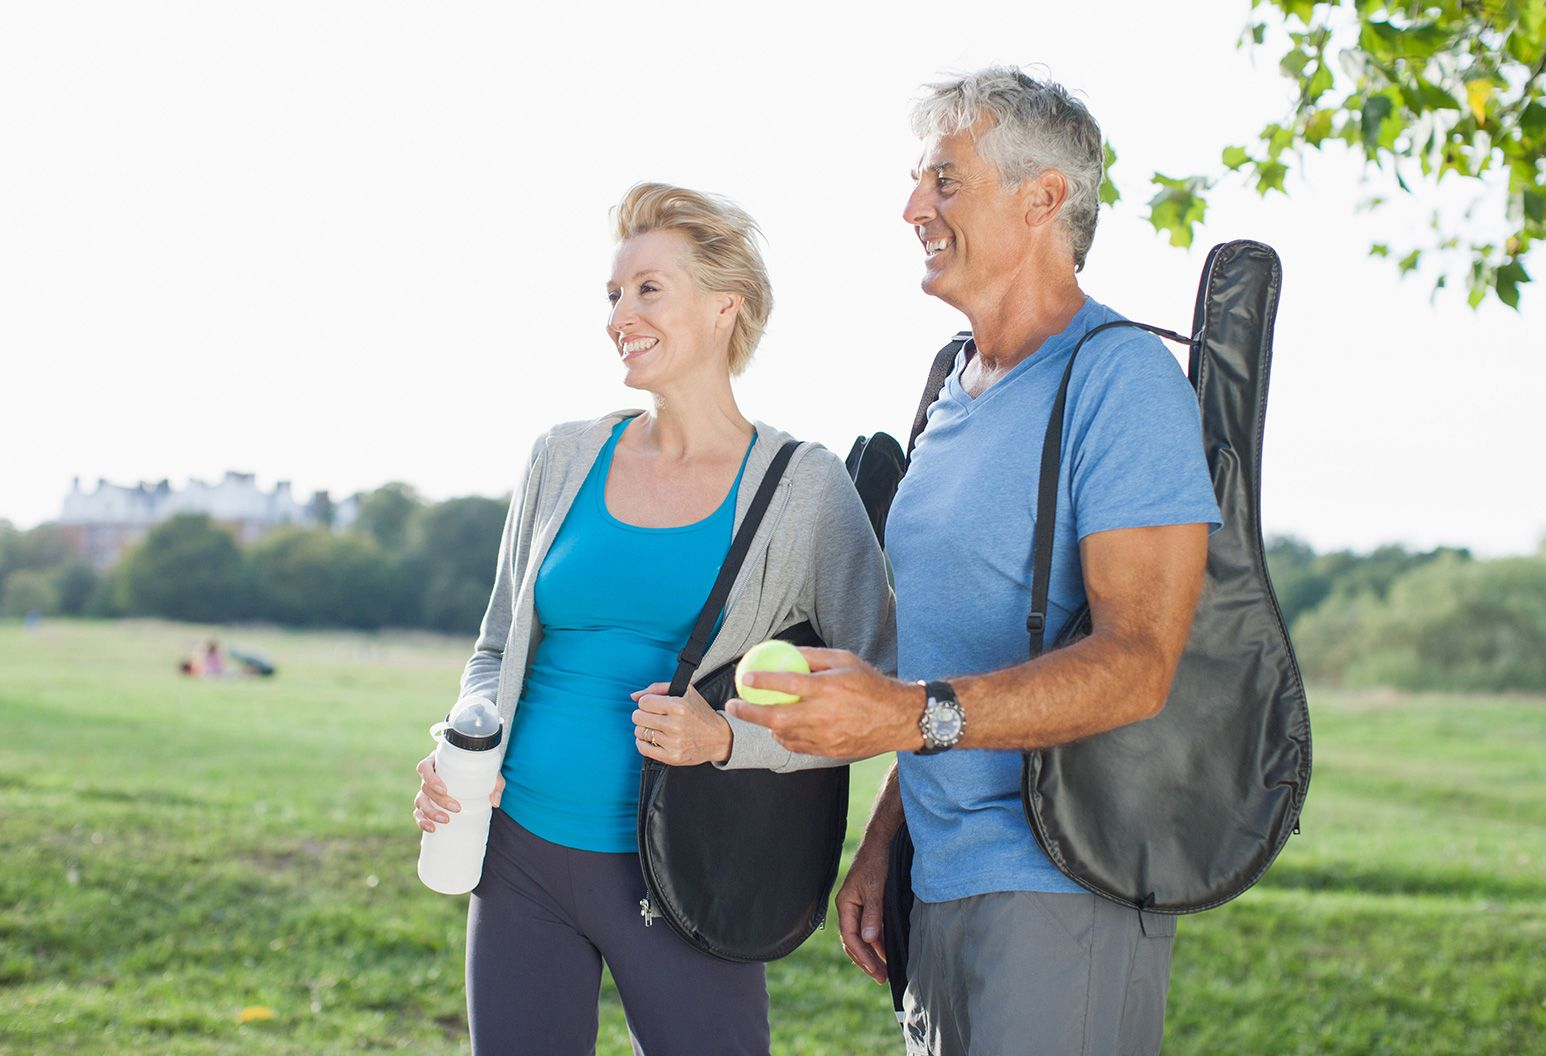 Senior couple walks through a park with tennis equipment